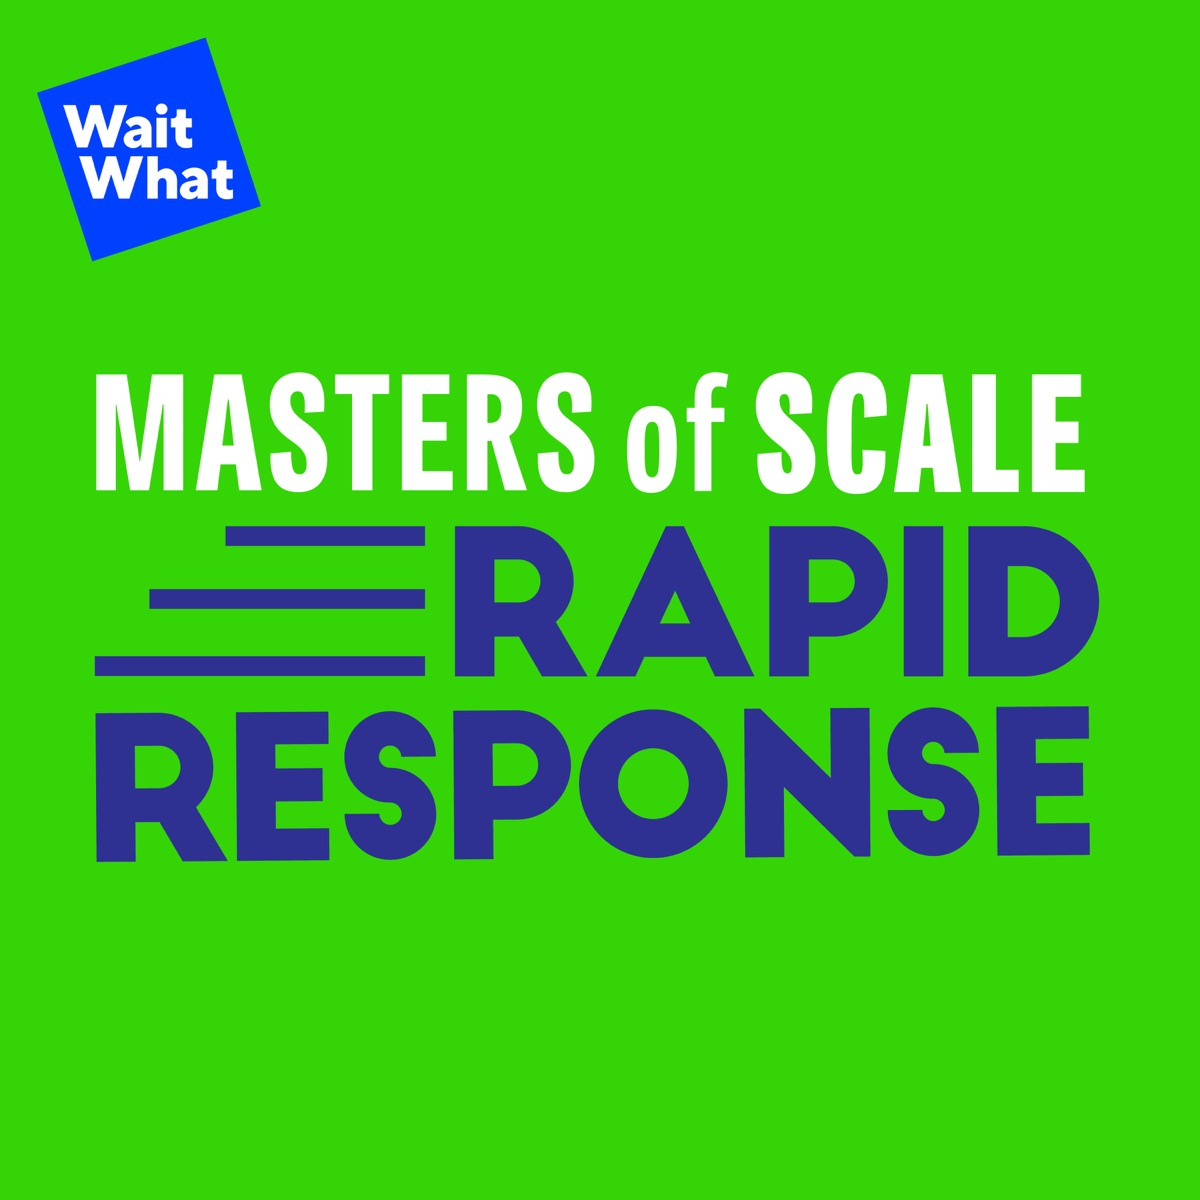 Masters of Scale: Rapid Response